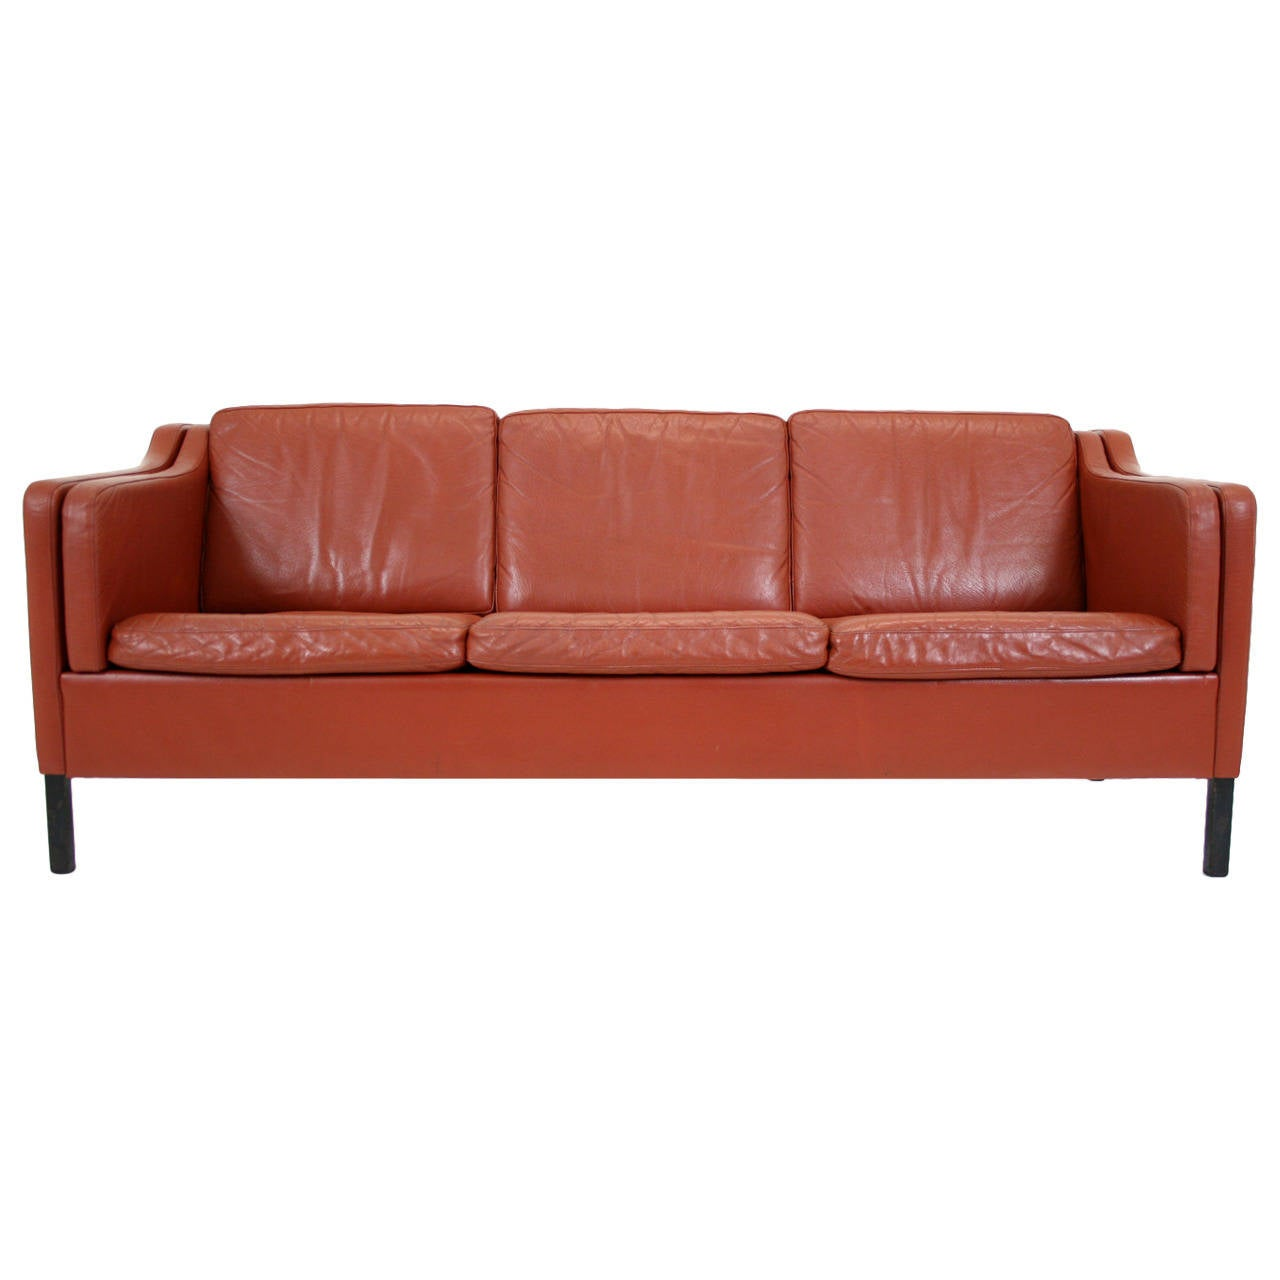 danish mid century modern leather three seat sofa or loveseat at 1stdibs. Black Bedroom Furniture Sets. Home Design Ideas